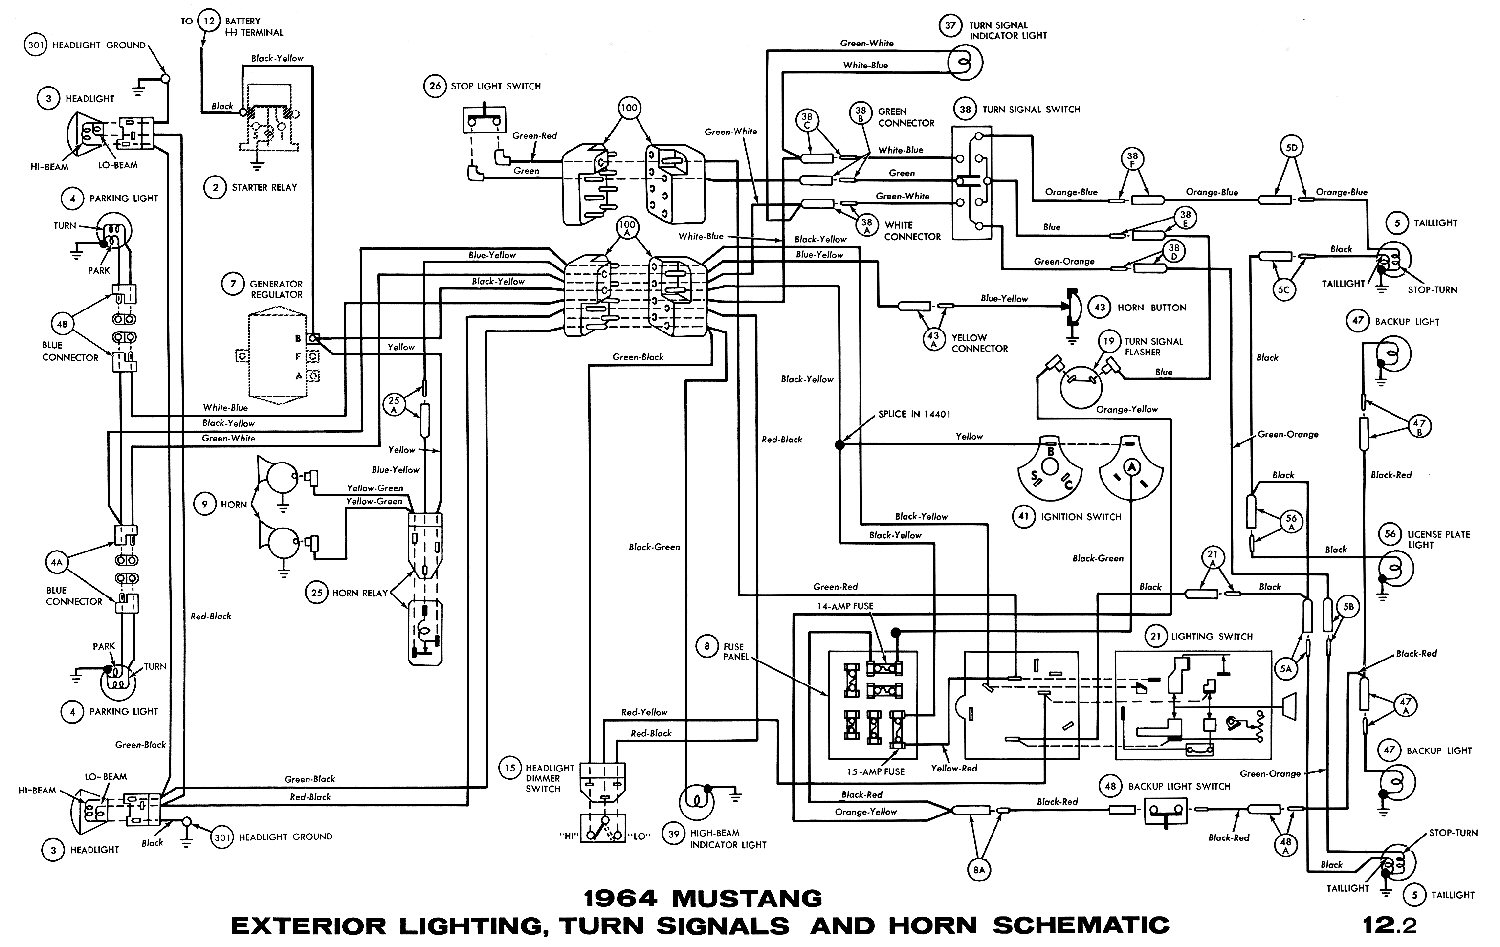 I on 1968 Mustang Ignition Switch Wiring Diagram